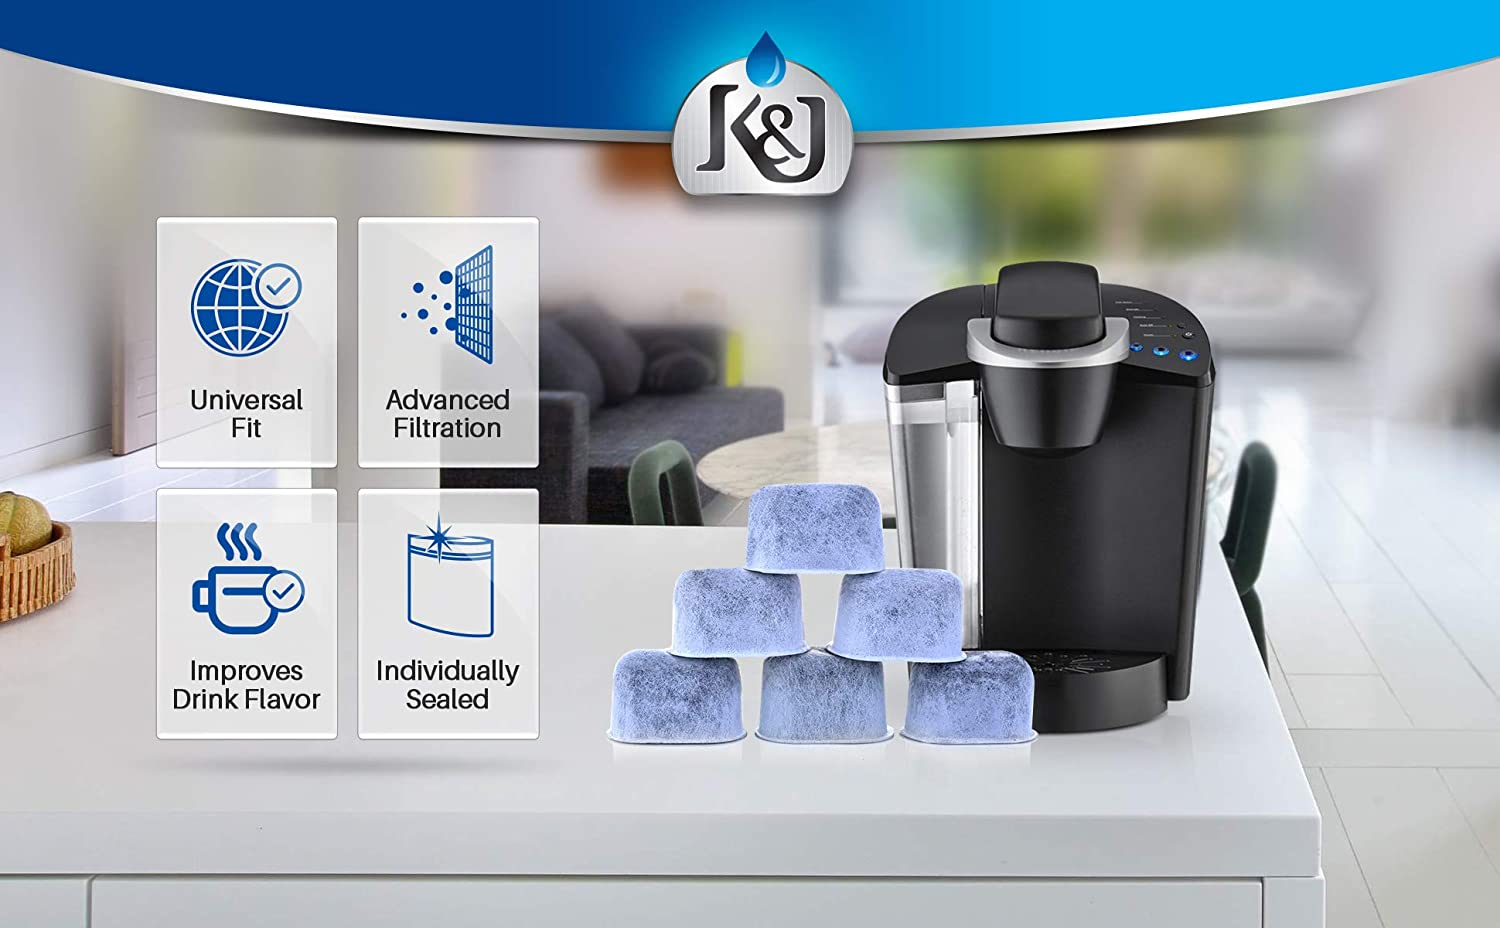 6-Pack KEURIG Compatible Water Filters by K/&J Replacement Charcoal Water Filters for Keurig 2.0 Universal Fit Keurig Compatible Filters and older NOT CUISINART Coffee Machines